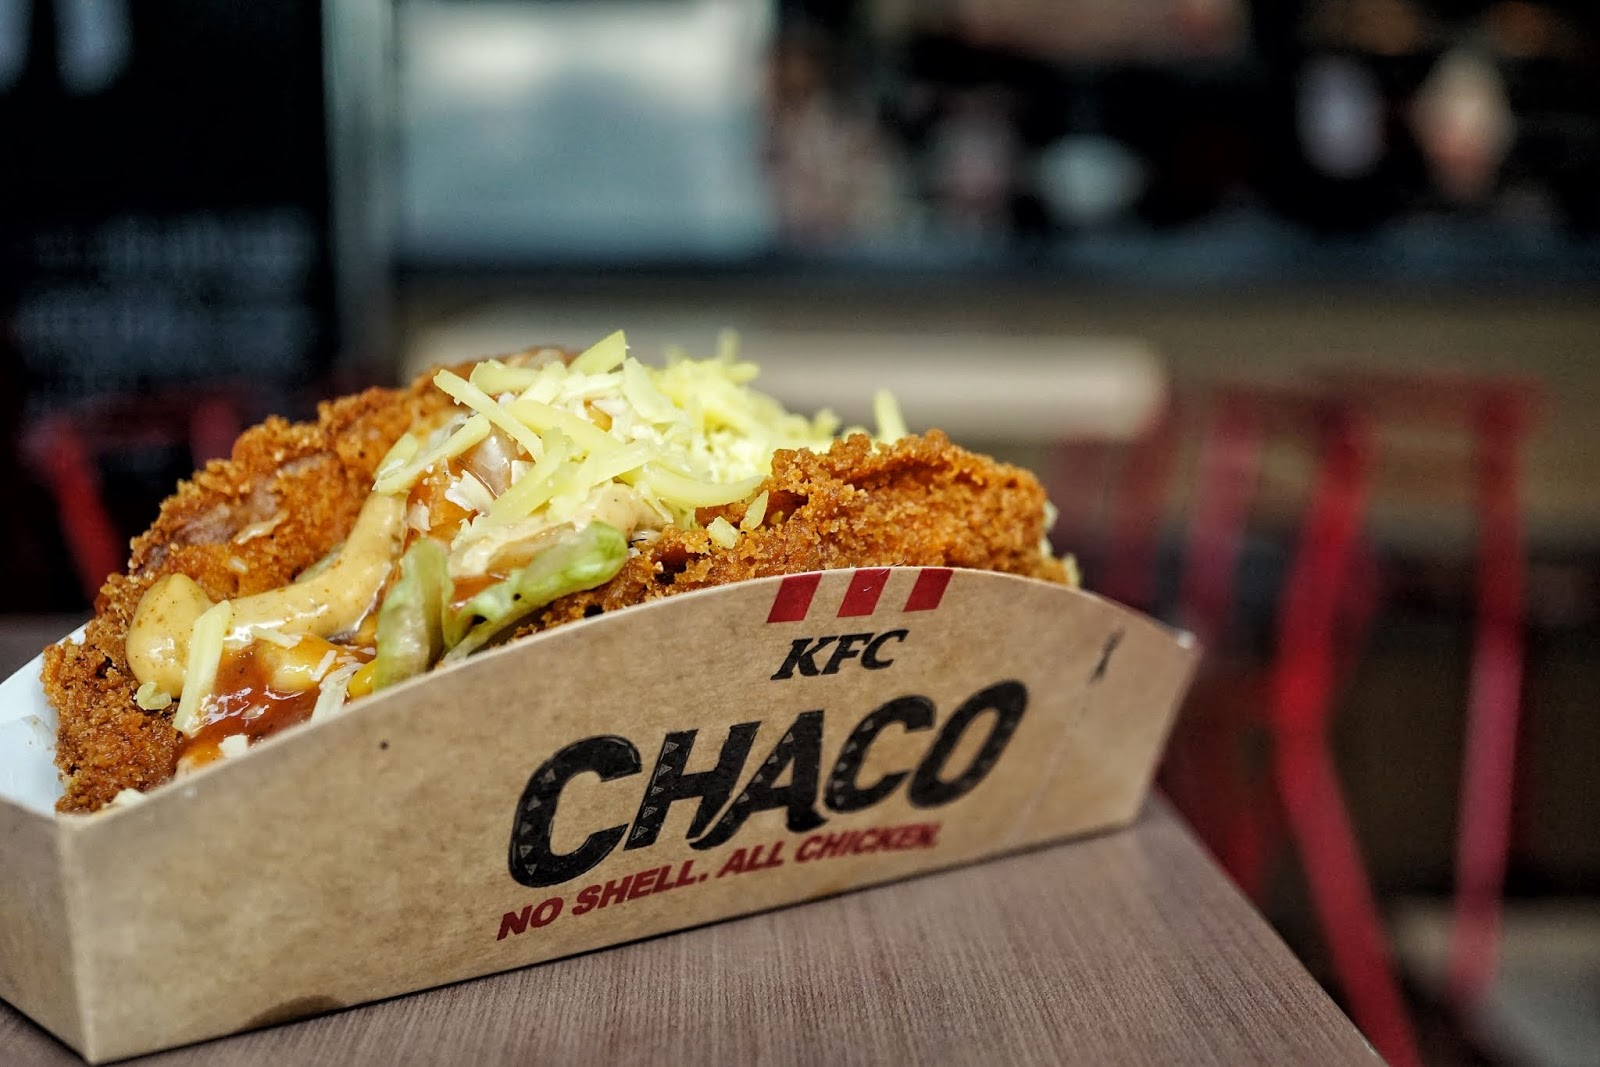 For Tacos, you could even go to KFC now